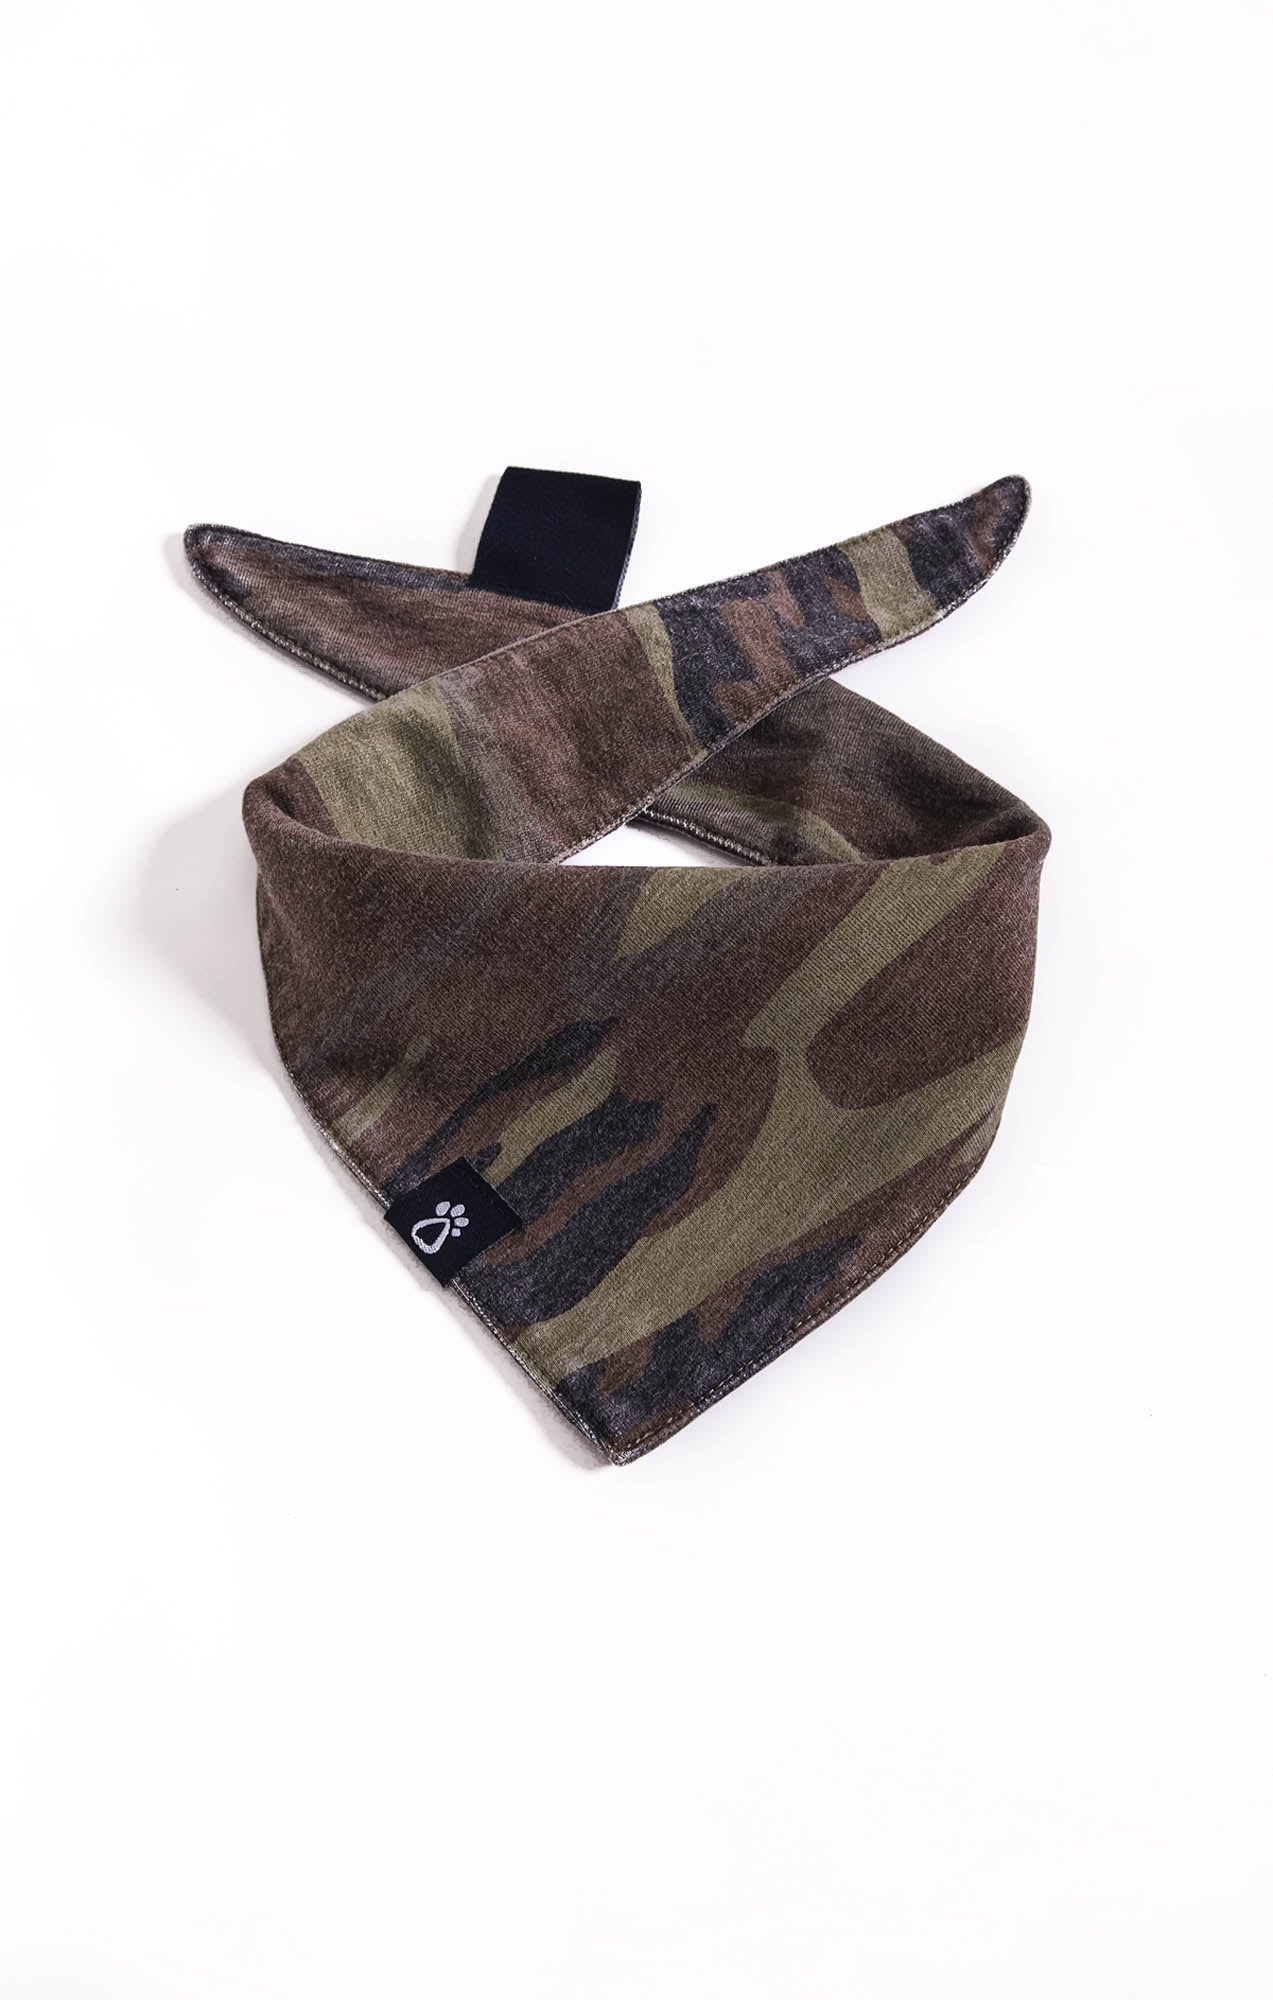 Bandana Camo Bandana by ZOO SUPPLY Camo Green